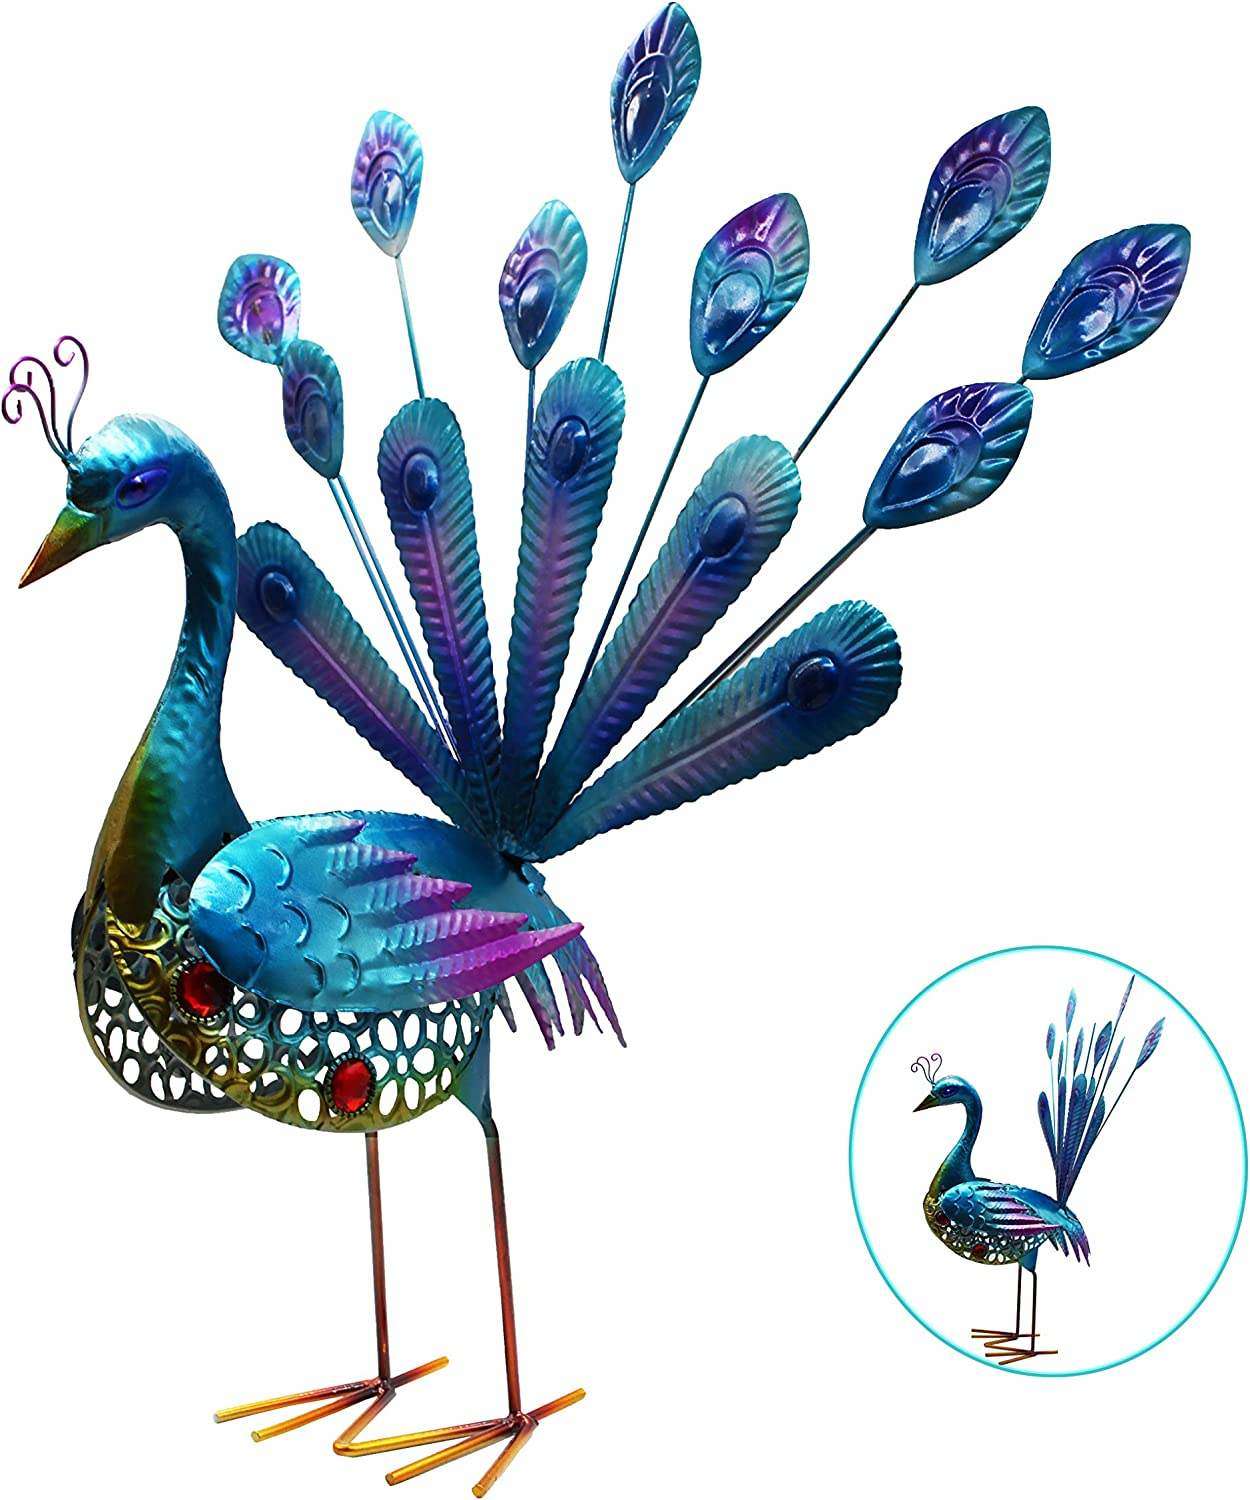 VOTENVO Metal Peacock Garden Statues- Garden Outdoor Indoor Décor Statue, Yard Art Decoration Sculpture,Outdoor Lawn and Patio Decor, Backyard Sculpture, and Decoration. (20 Inch)